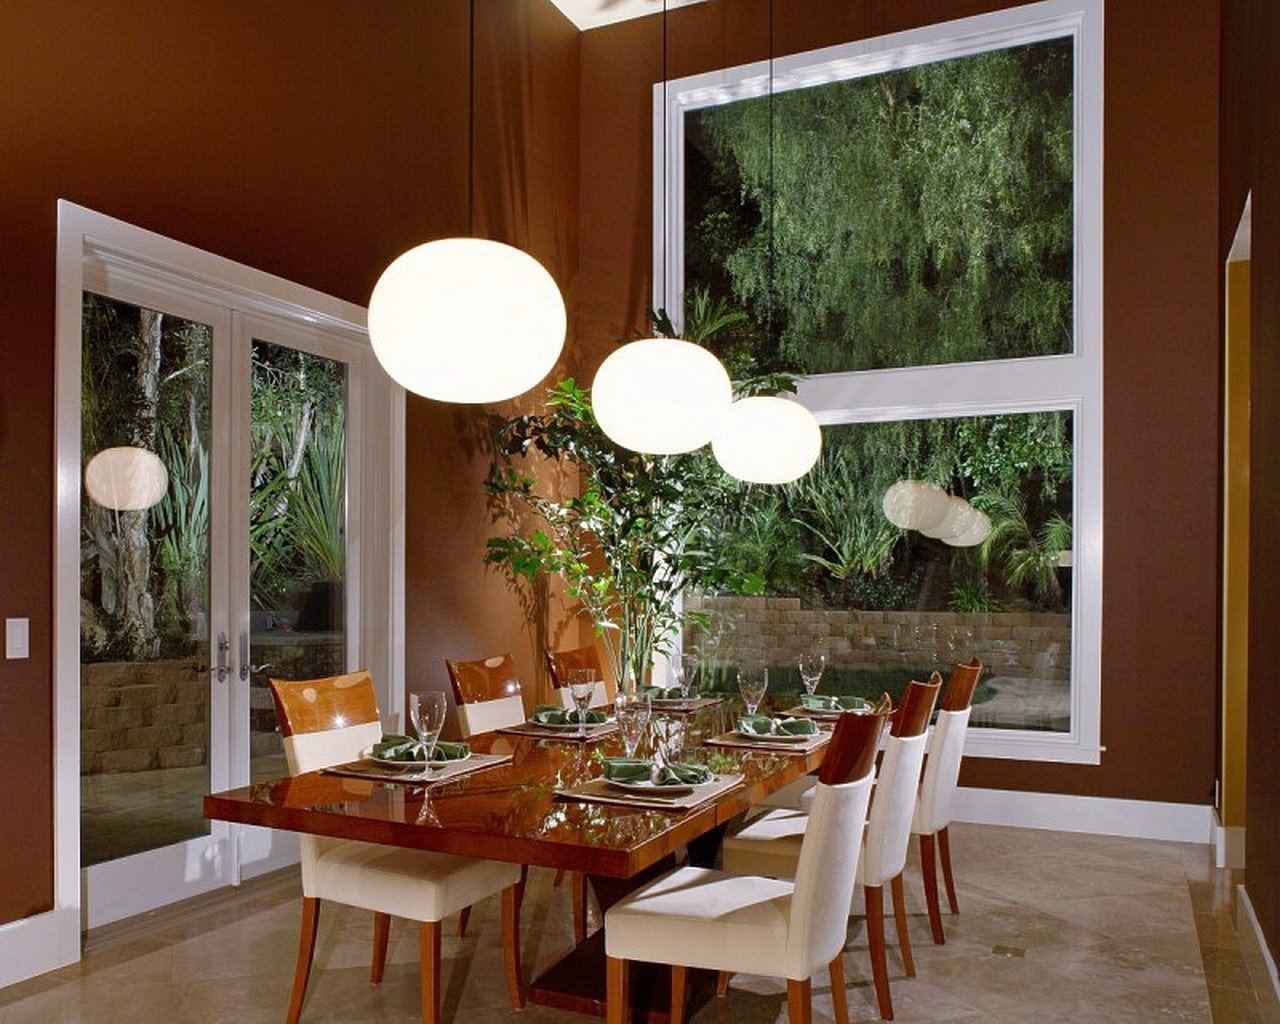 Dining Room Table Decor Ideas Unique 79 Handpicked Dining Room Ideas for Sweet Home Interior Design Inspirations